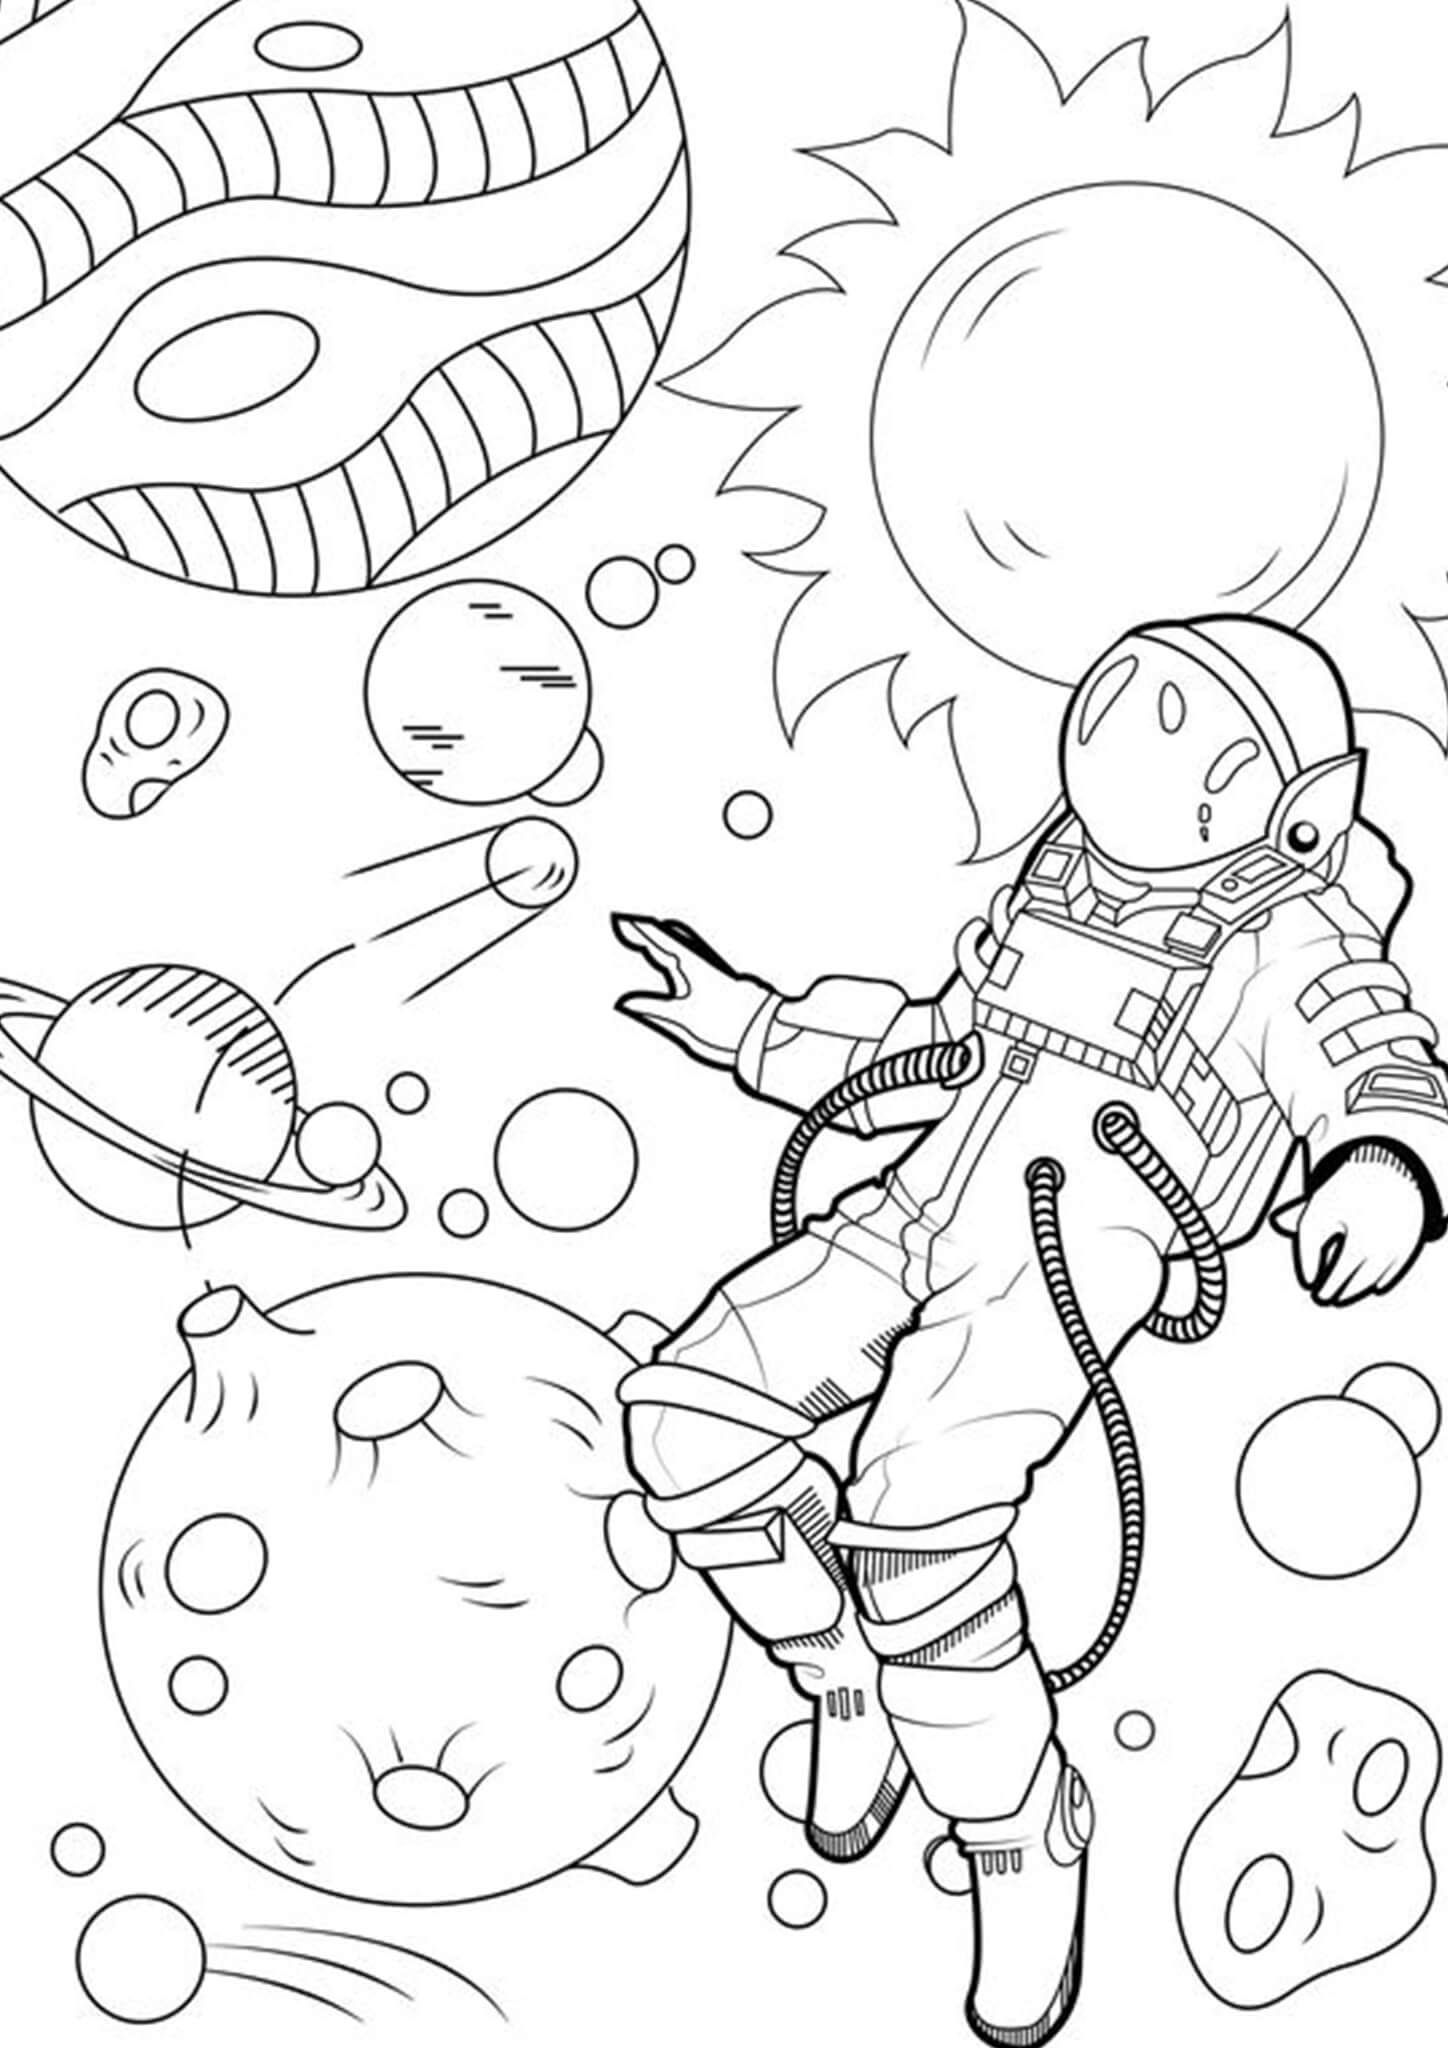 Free Easy To Print Space Coloring Pages Space Coloring Pages Moon Coloring Pages Free Coloring Pages